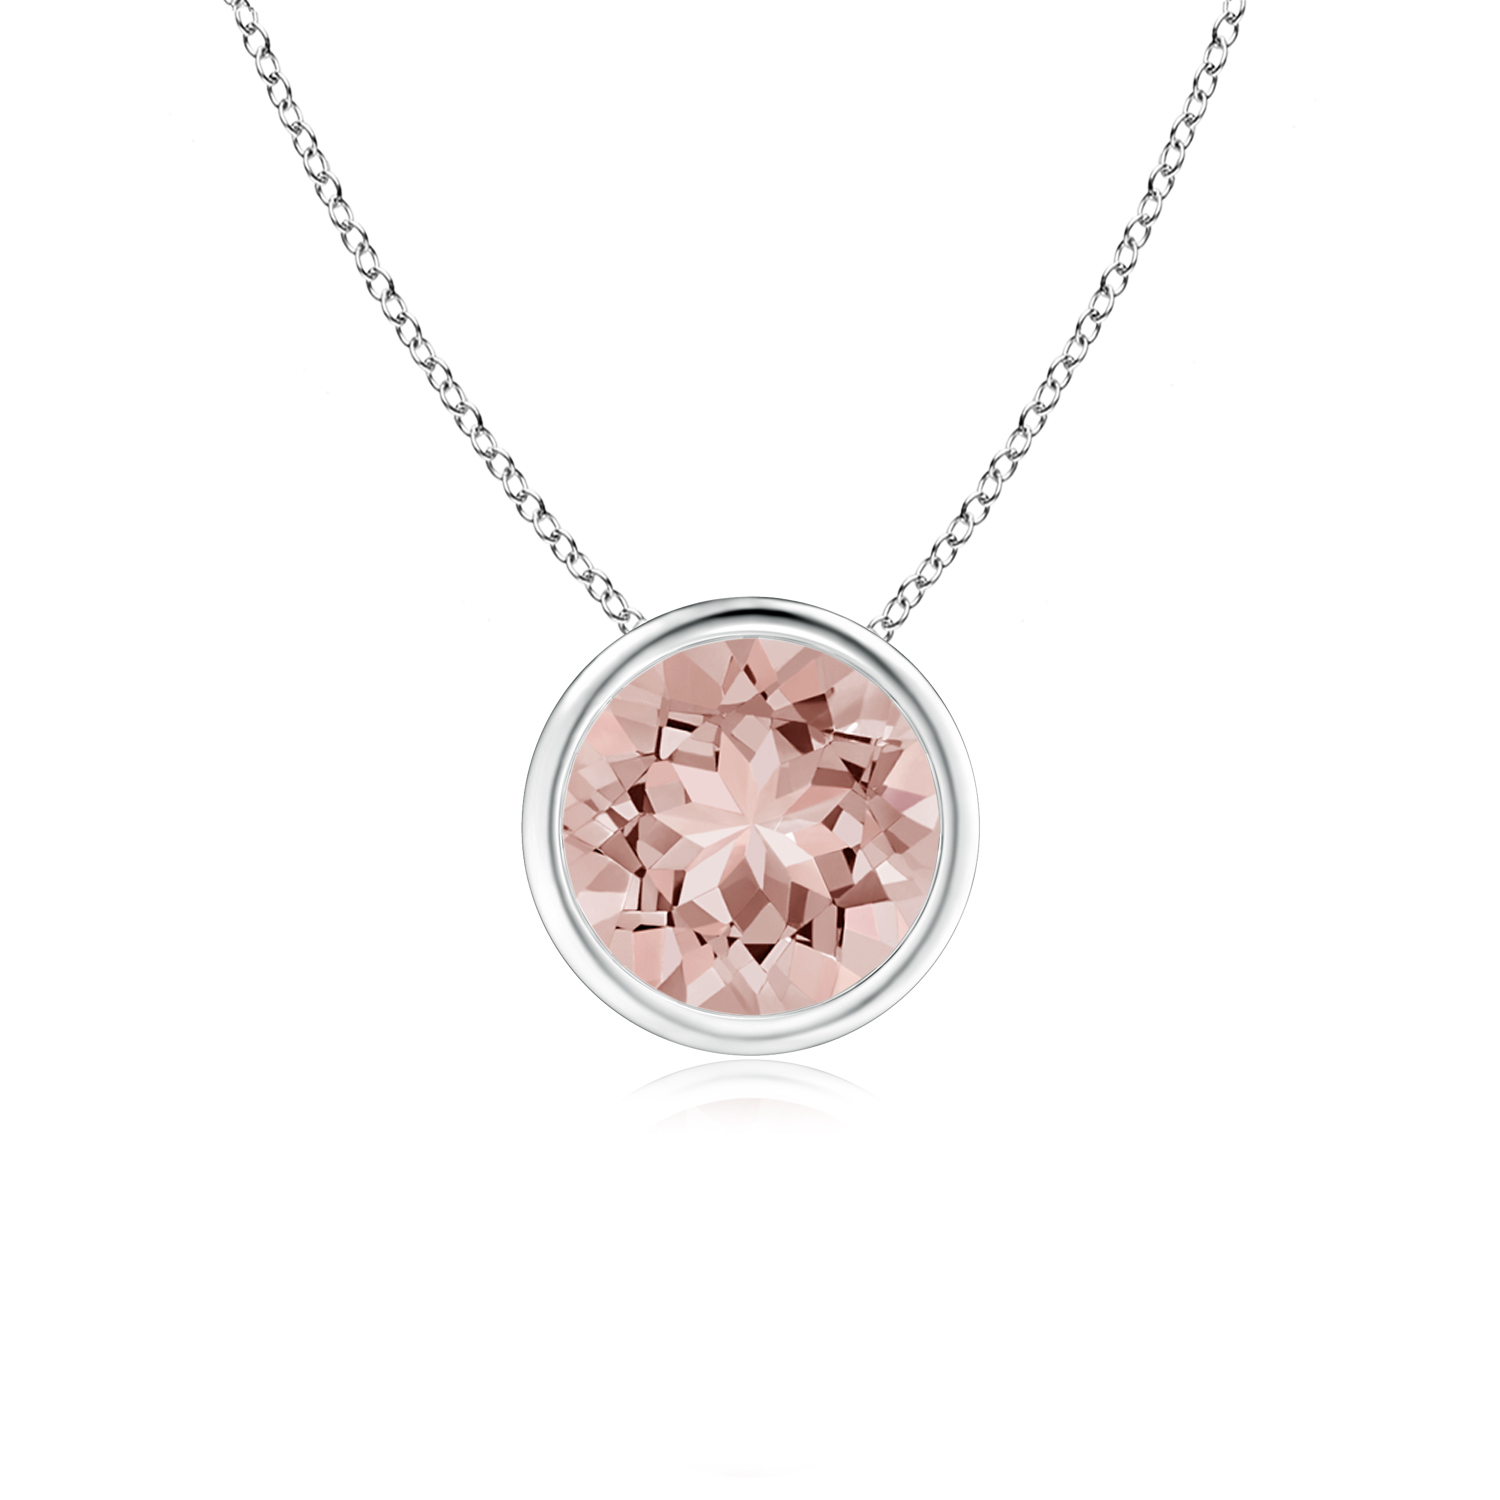 Bezel Set Round Morganite Solitaire Pendant in 950 Platinum (7mm Morganite) SP0159MG-PT-AAAA-7 by Angara.com